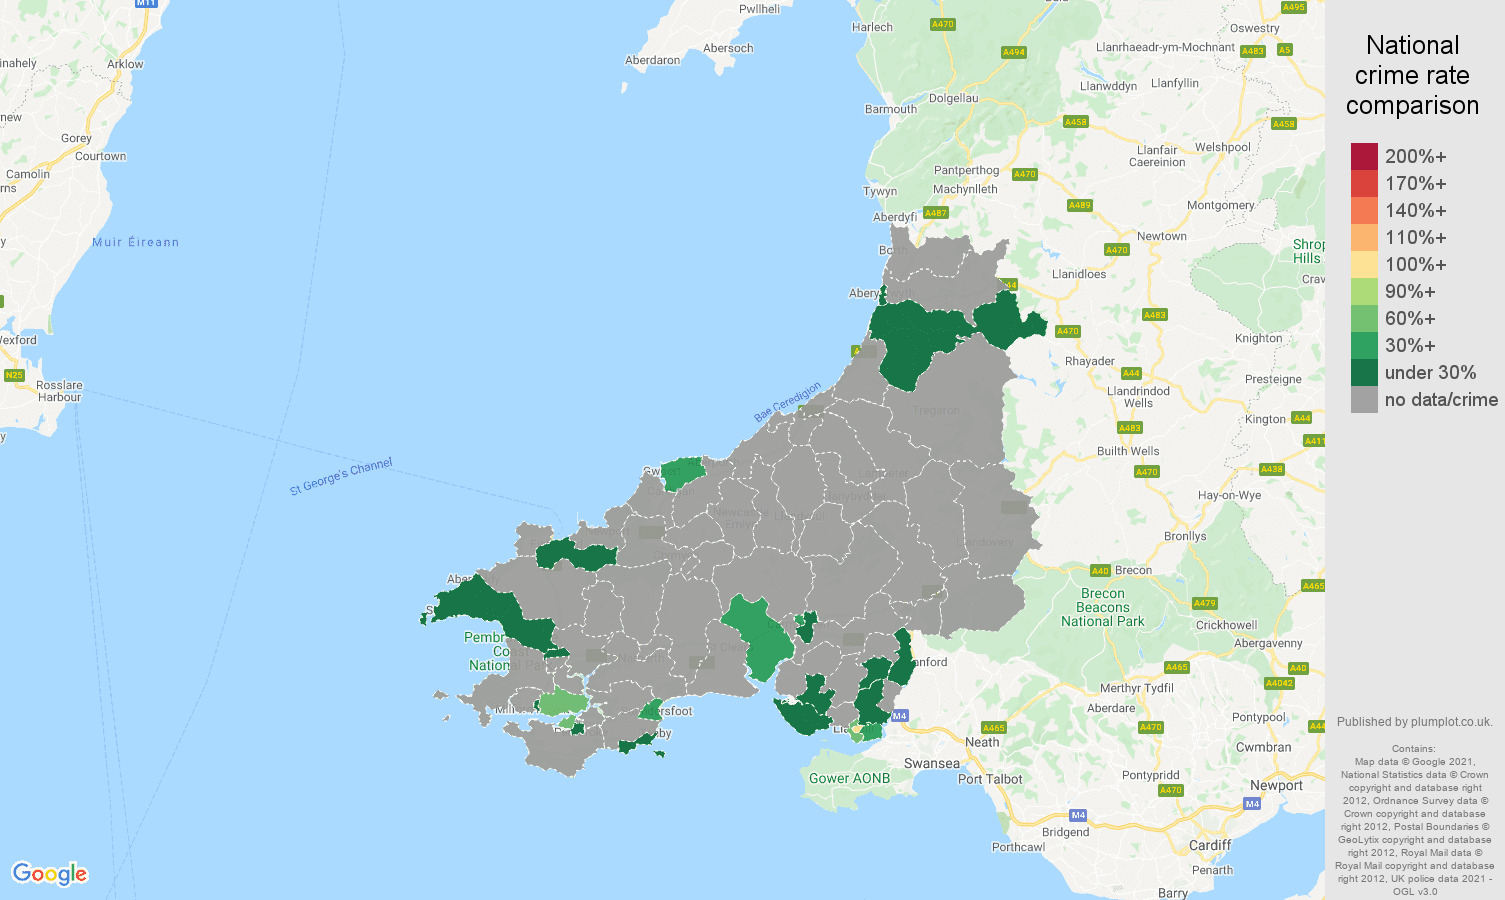 Dyfed theft from the person crime rate comparison map